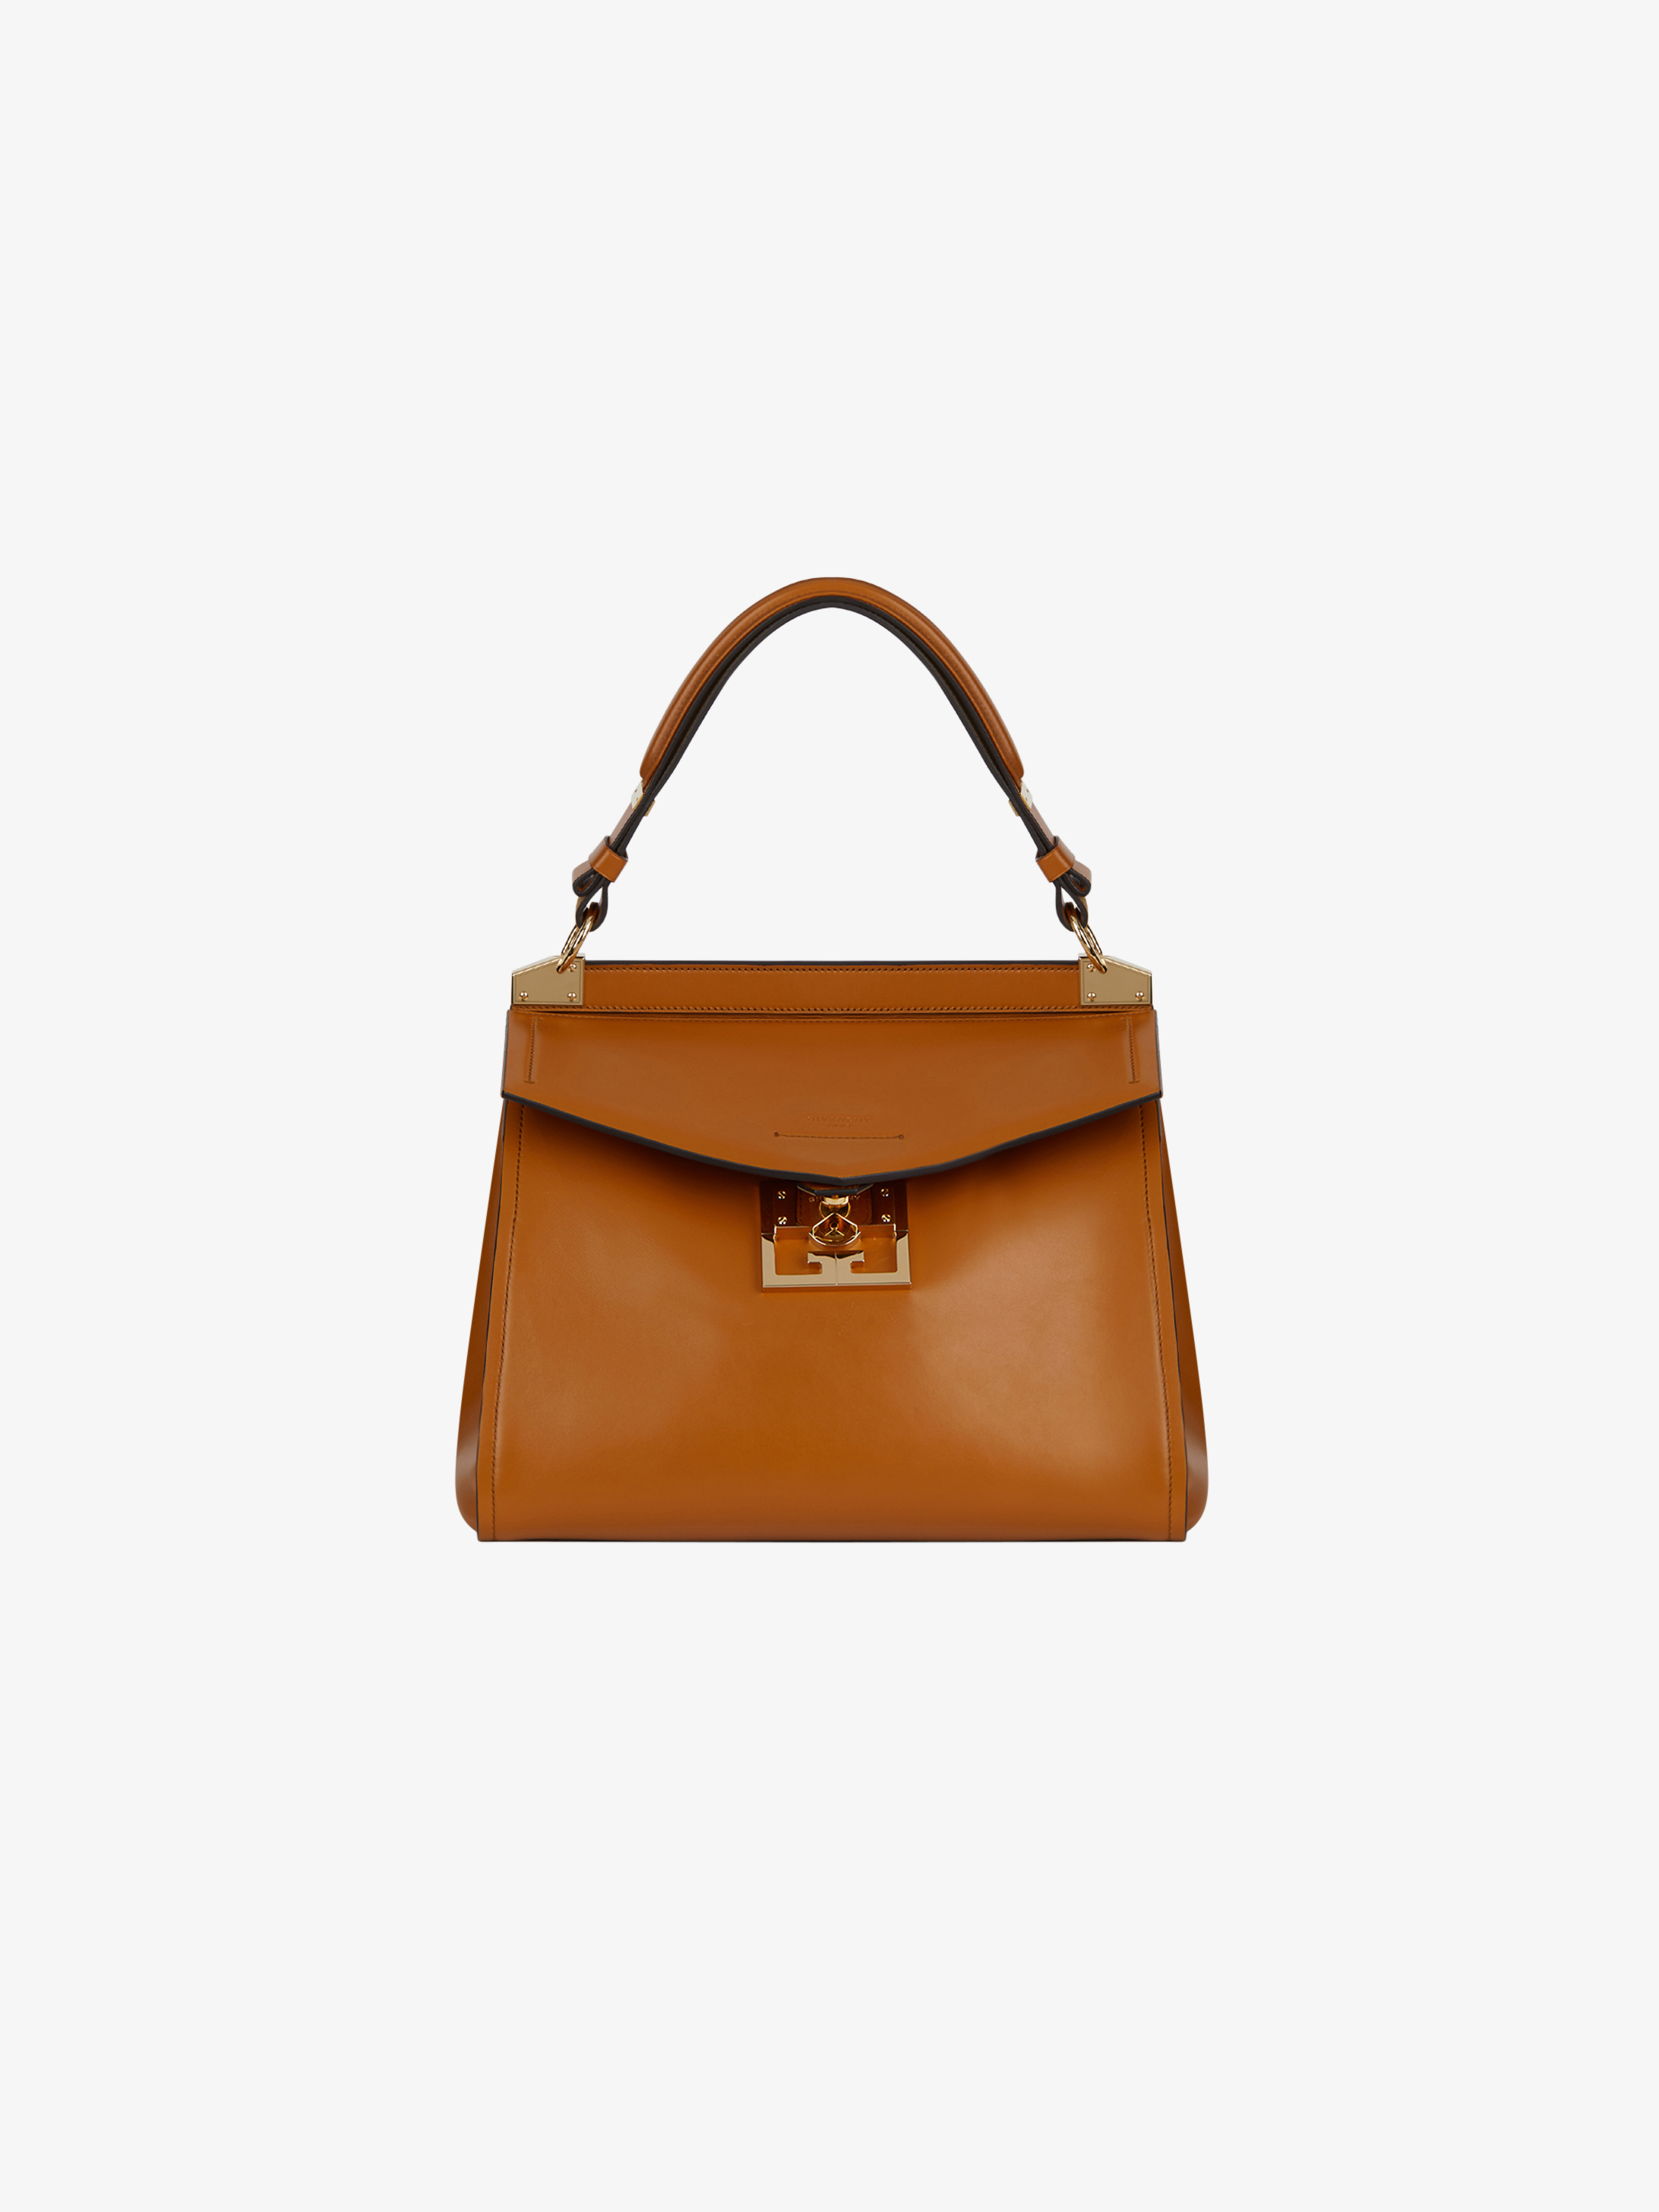 Medium Mystic bag in soft leather